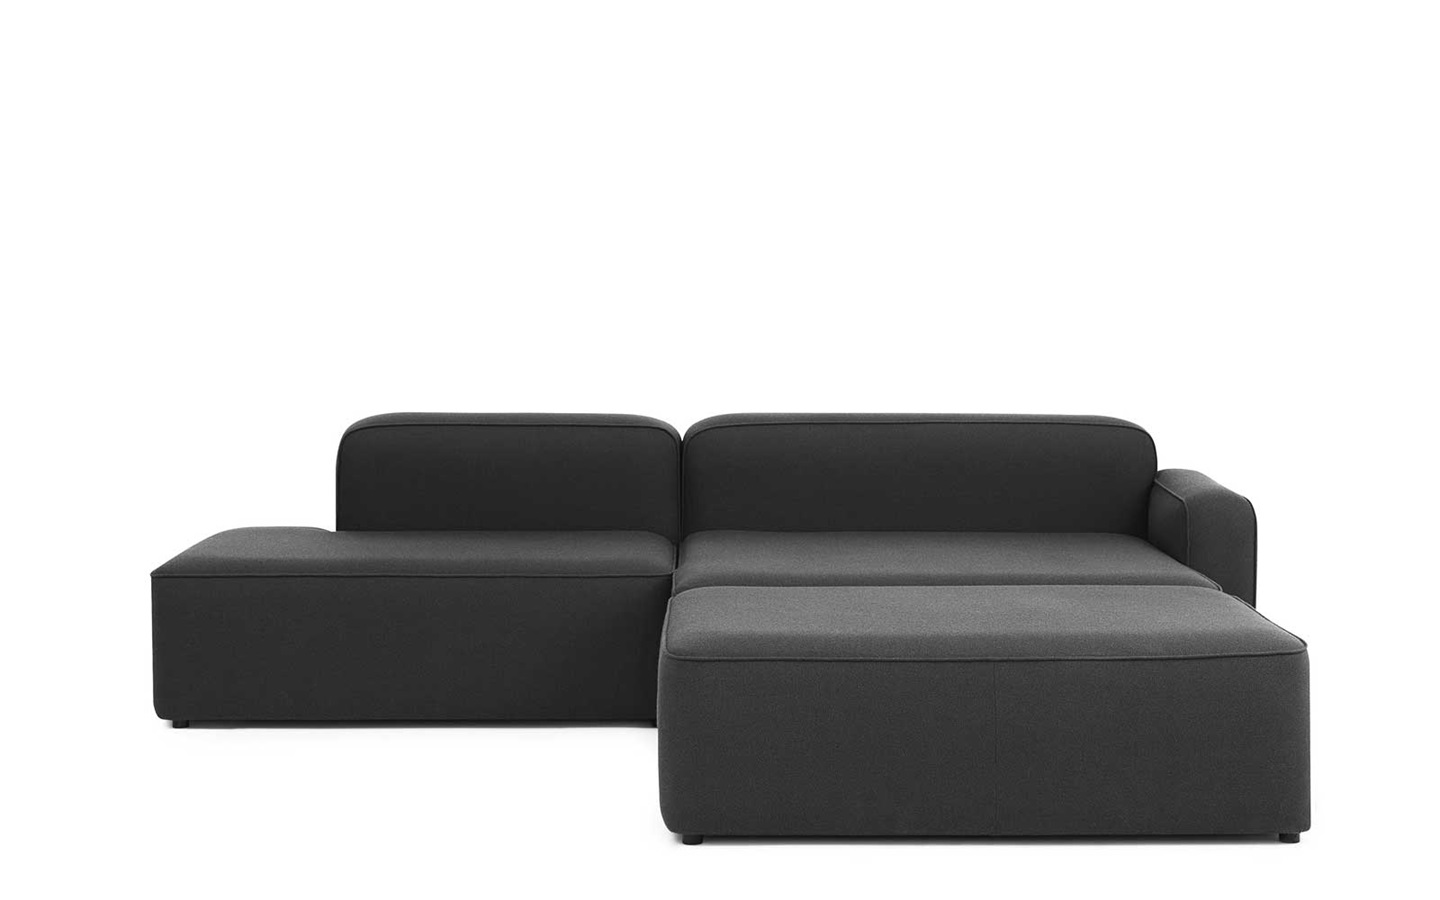 module sofa best 25 modular sofa ideas on pinterest couch. Black Bedroom Furniture Sets. Home Design Ideas